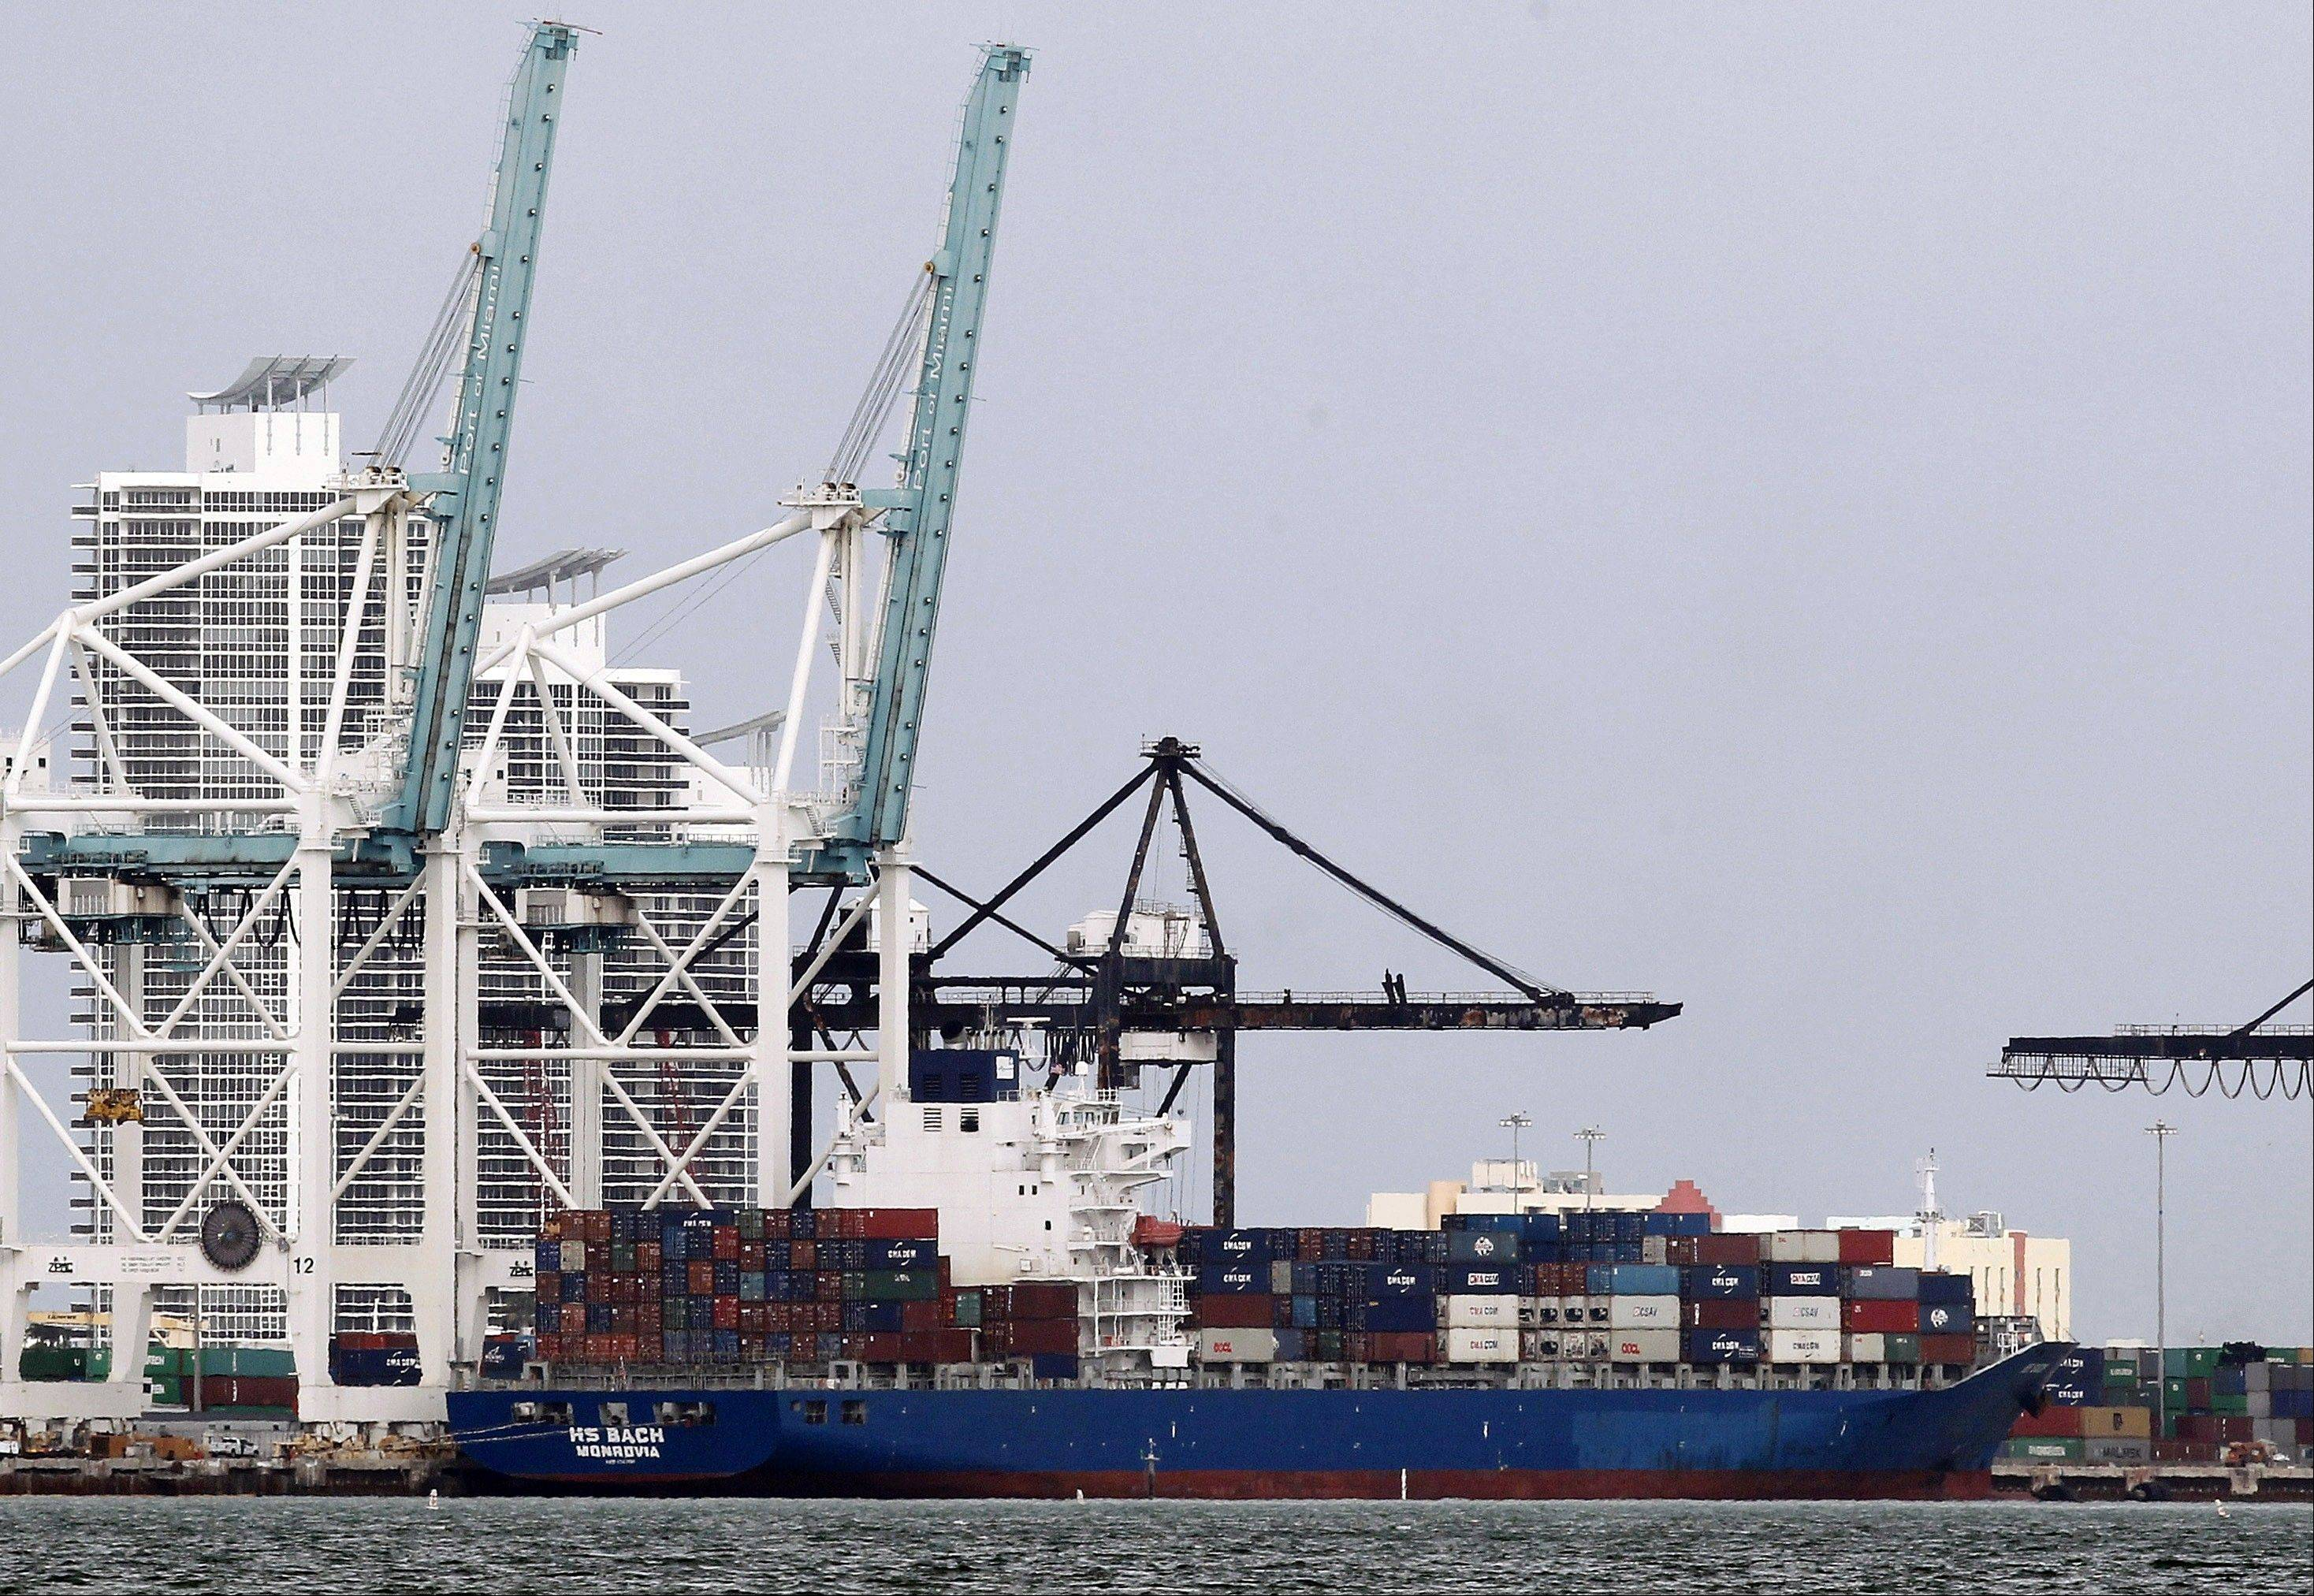 The U.S. trade deficit expanded in November to its widest point in seven months, driven by a surge in imports that outpaced modest growth in exports.